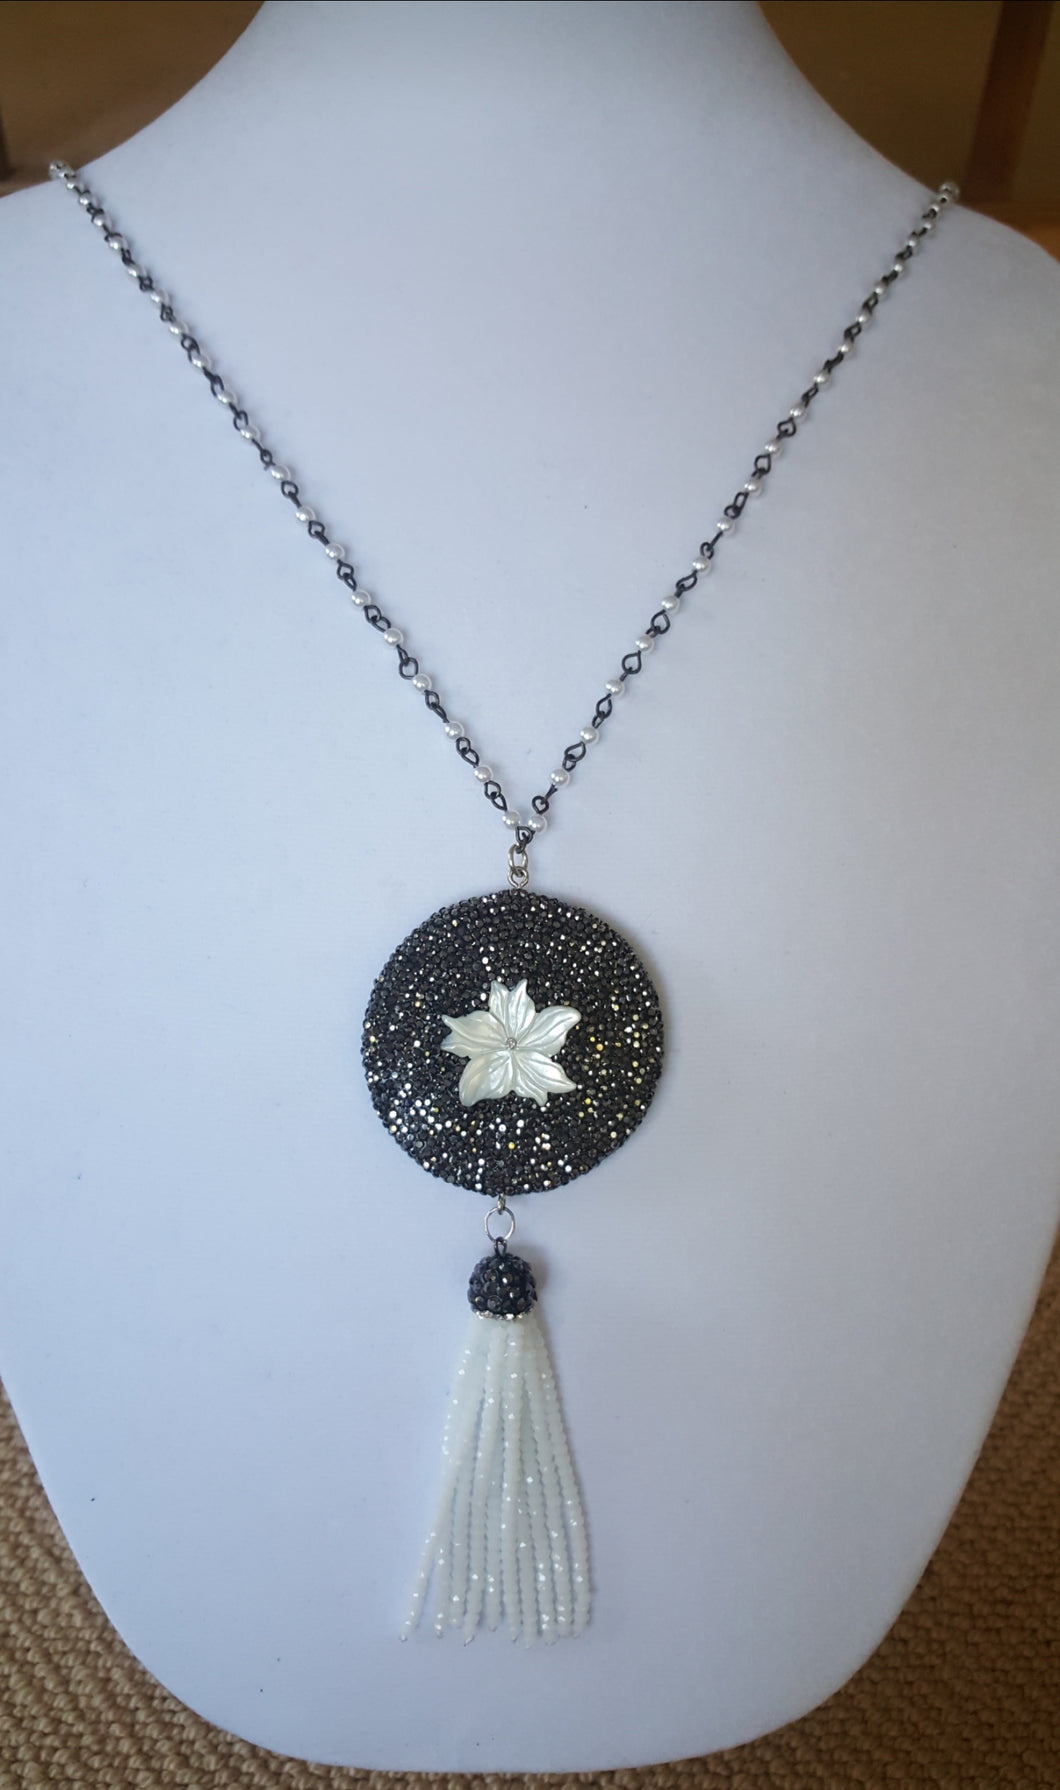 Tassel Necklace With Flower Pendant